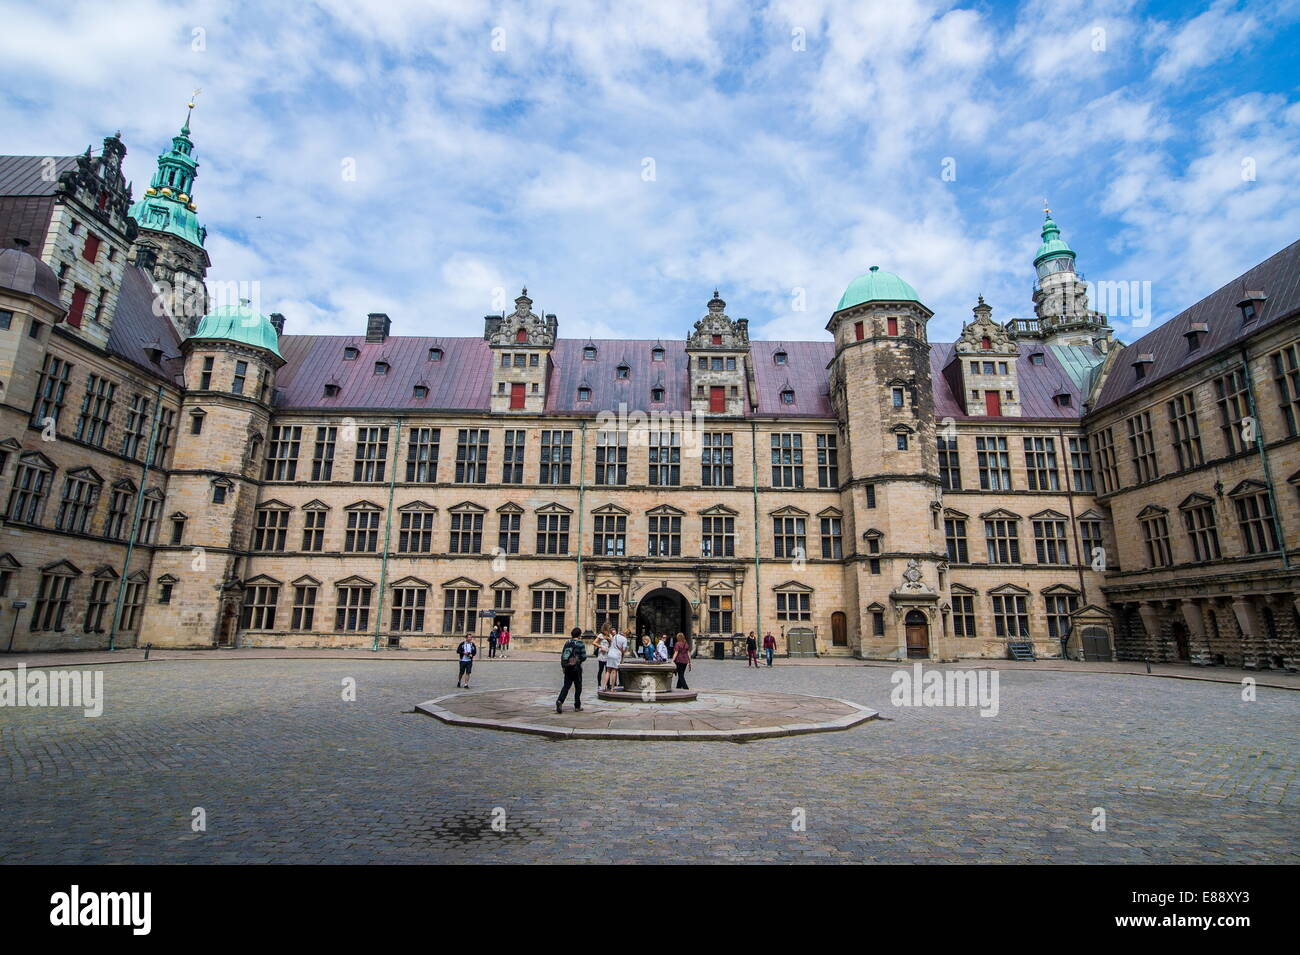 Inner yard in Kronborg Renaissance castle, UNESCO World Heritage Site, Helsingor, Denmark, Scandinavia, Europe - Stock Image